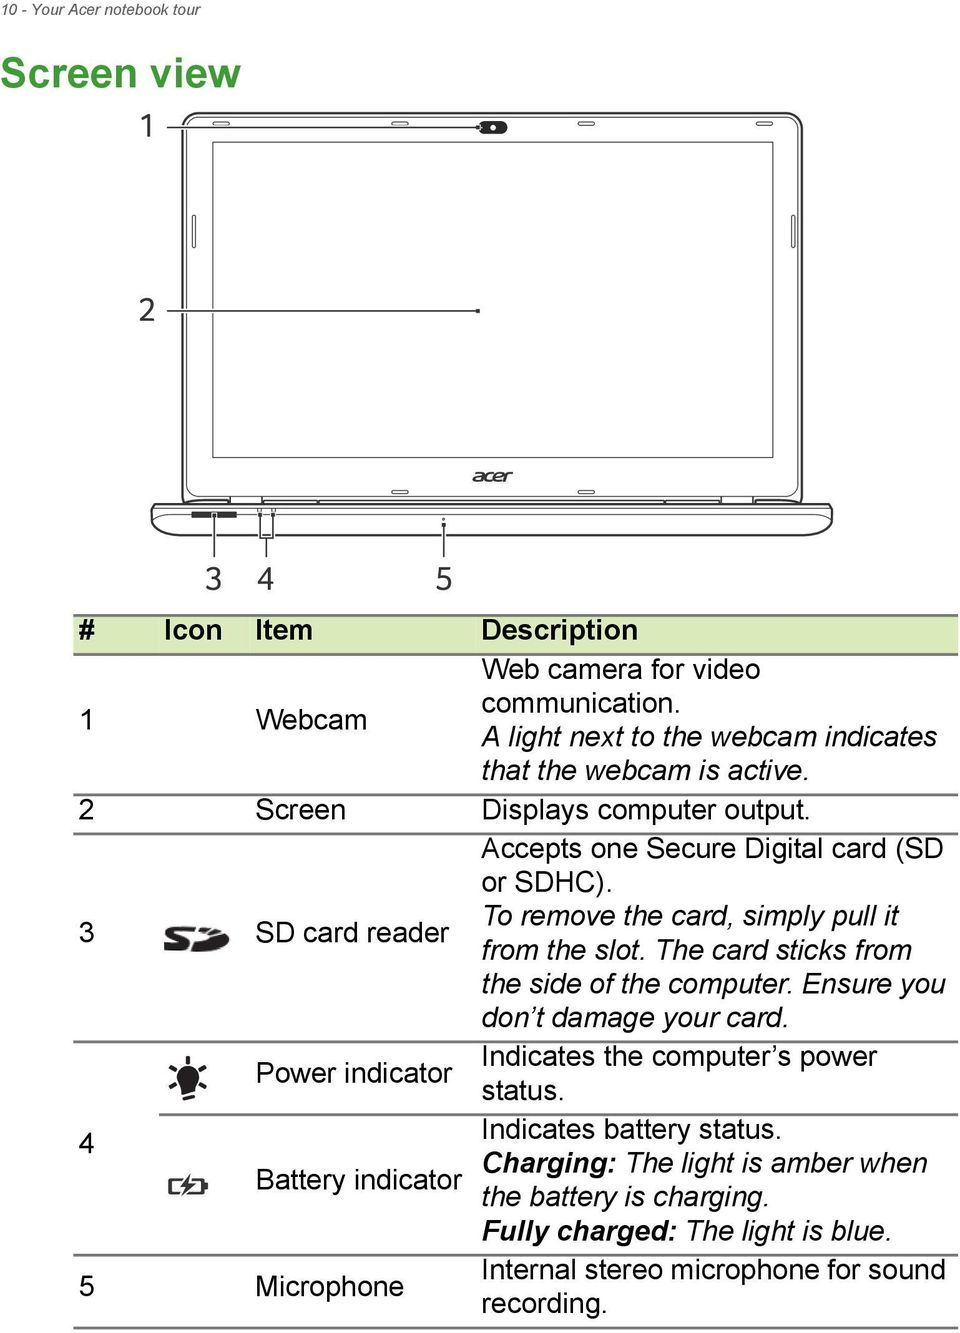 To remove the card, simply pull it from the slot. The card sticks from the side of the computer. Ensure you don t damage your card.